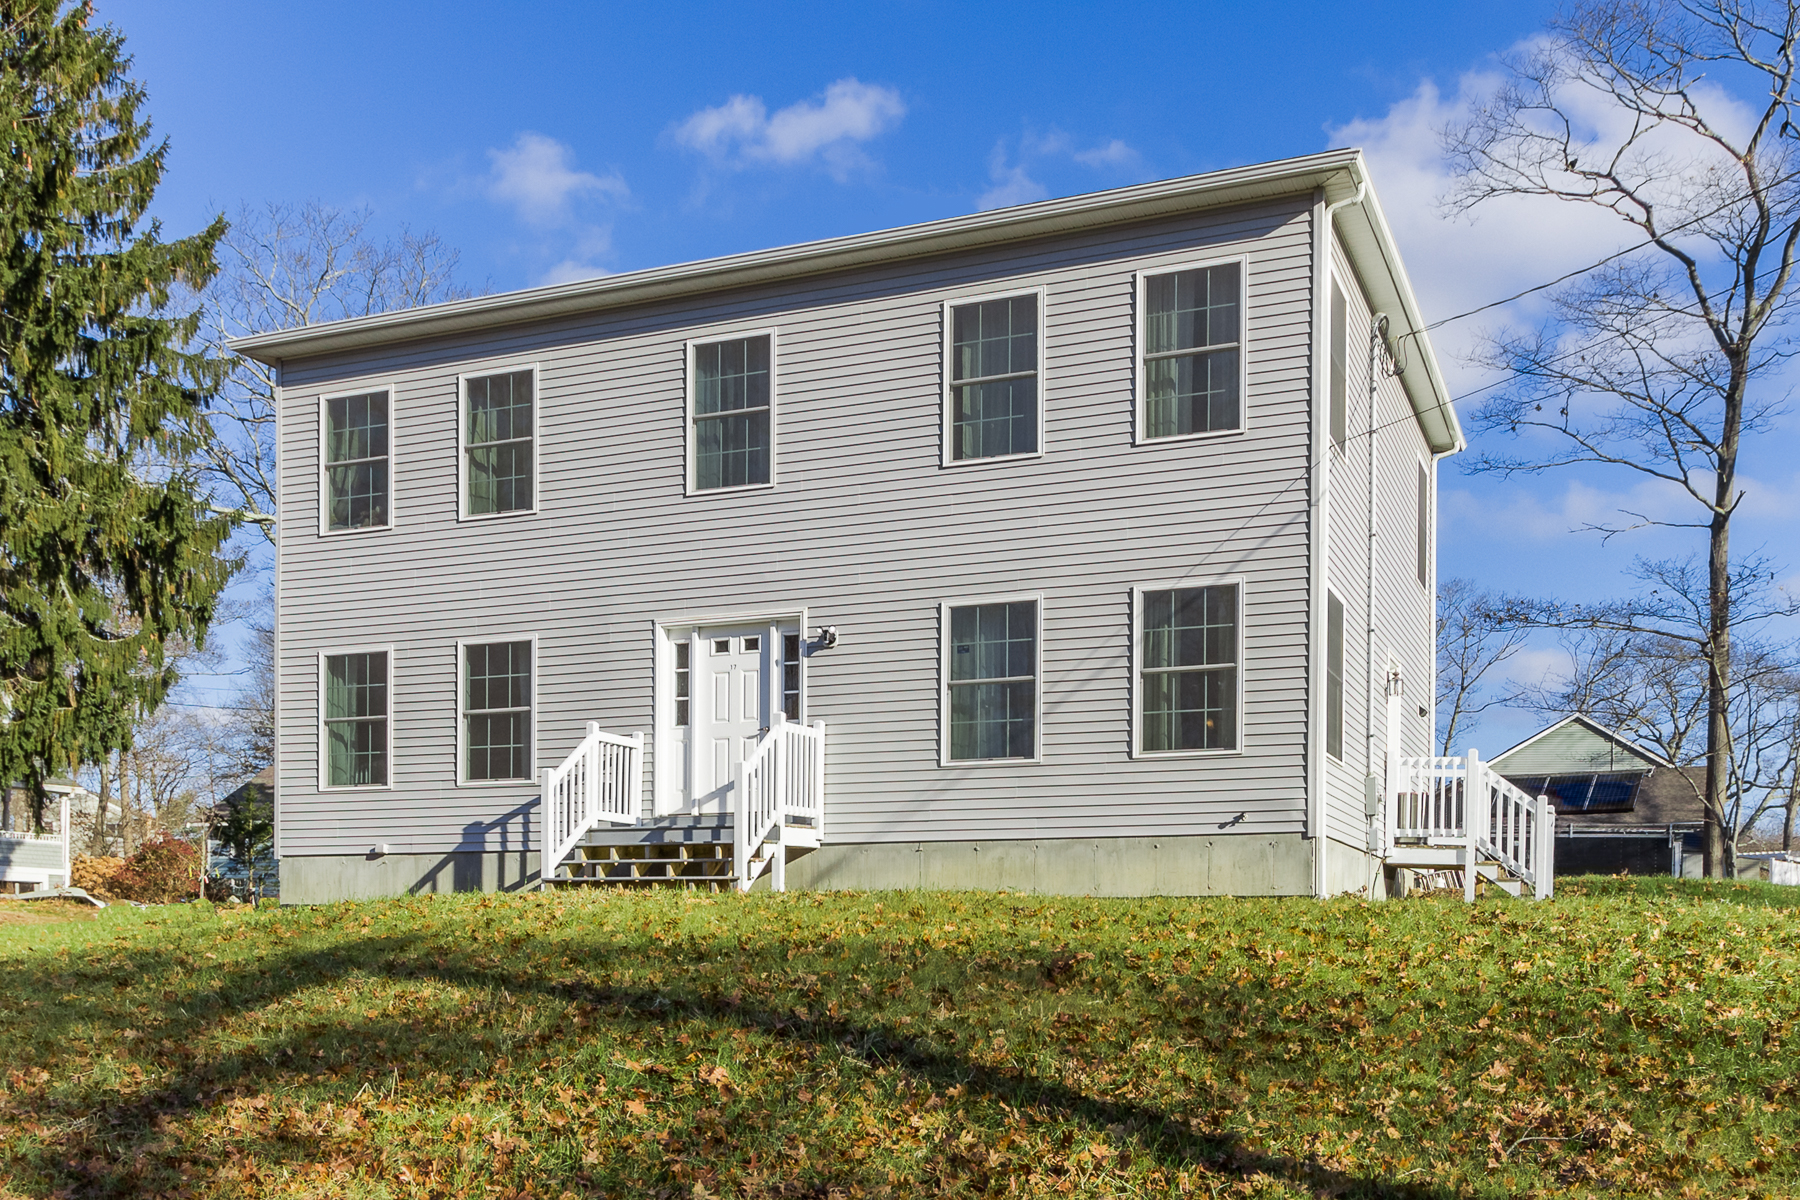 Single Family Home for Sale at New Construction in Quaint Beachside Village 17 Ocean Avenue Gloucester, Massachusetts 01930 United States